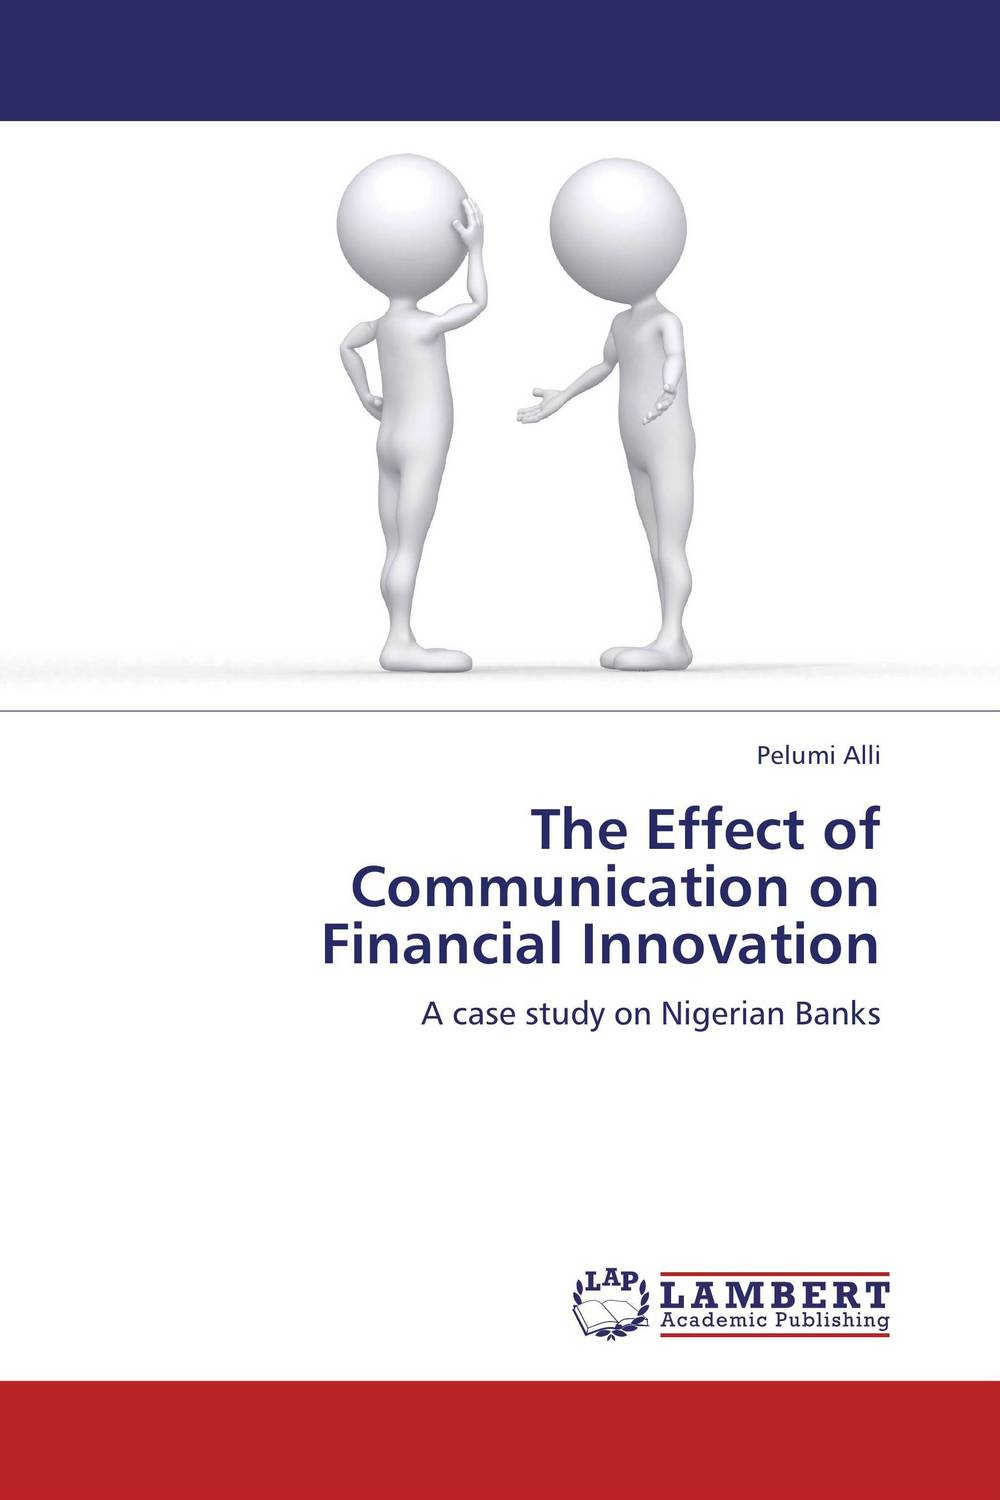 The Effect of Communication on Financial Innovation